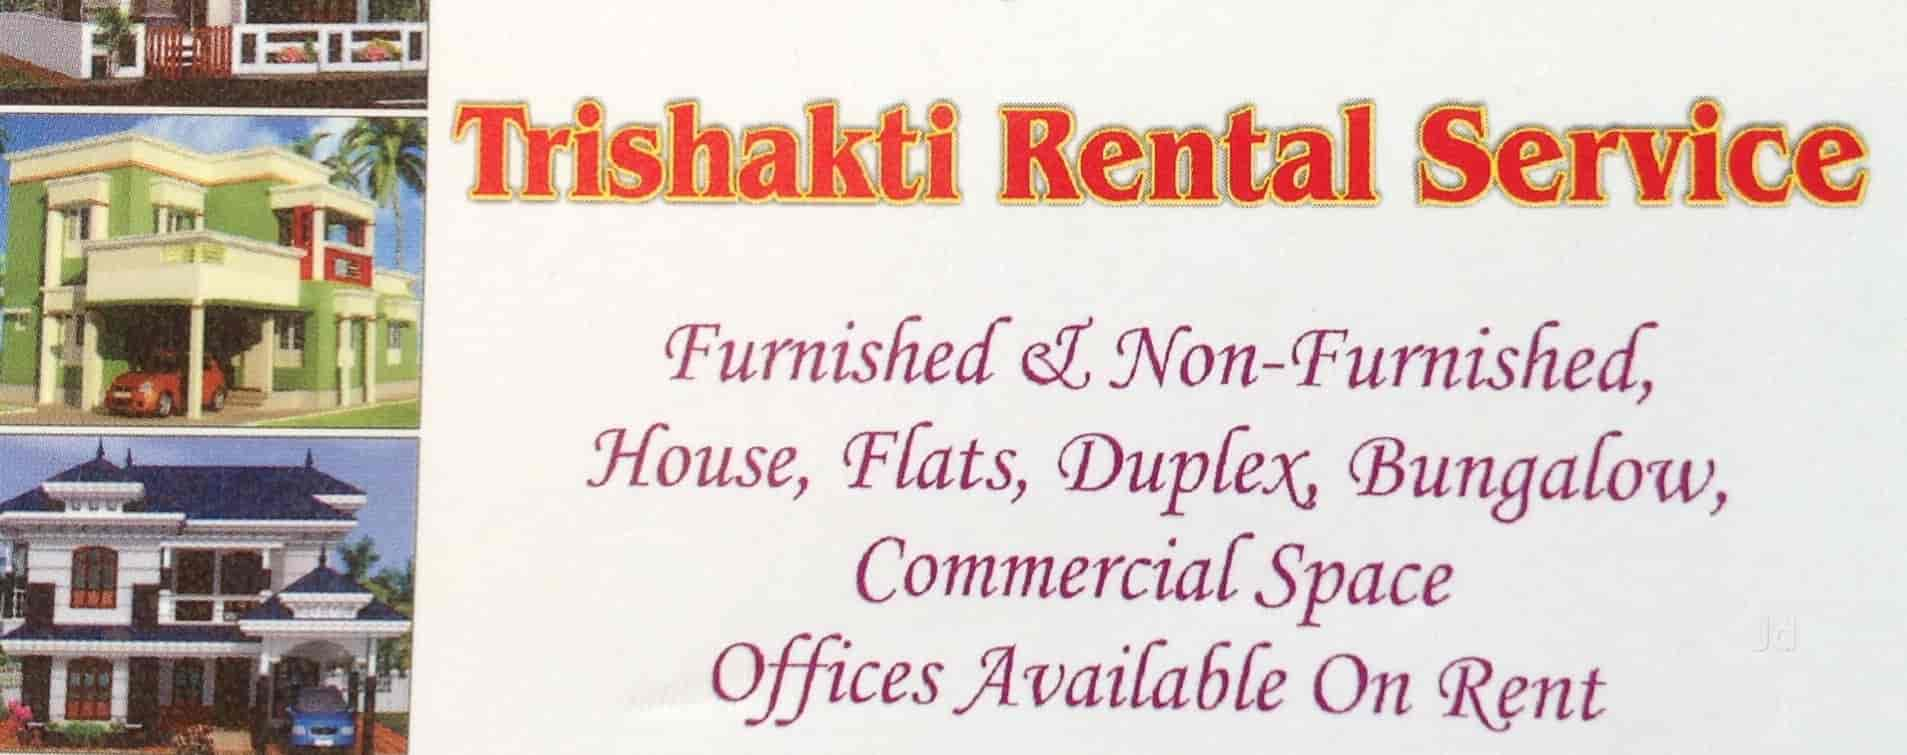 Trishakti Rental Service And Property, Vijay Nagar Colony Jabalpur